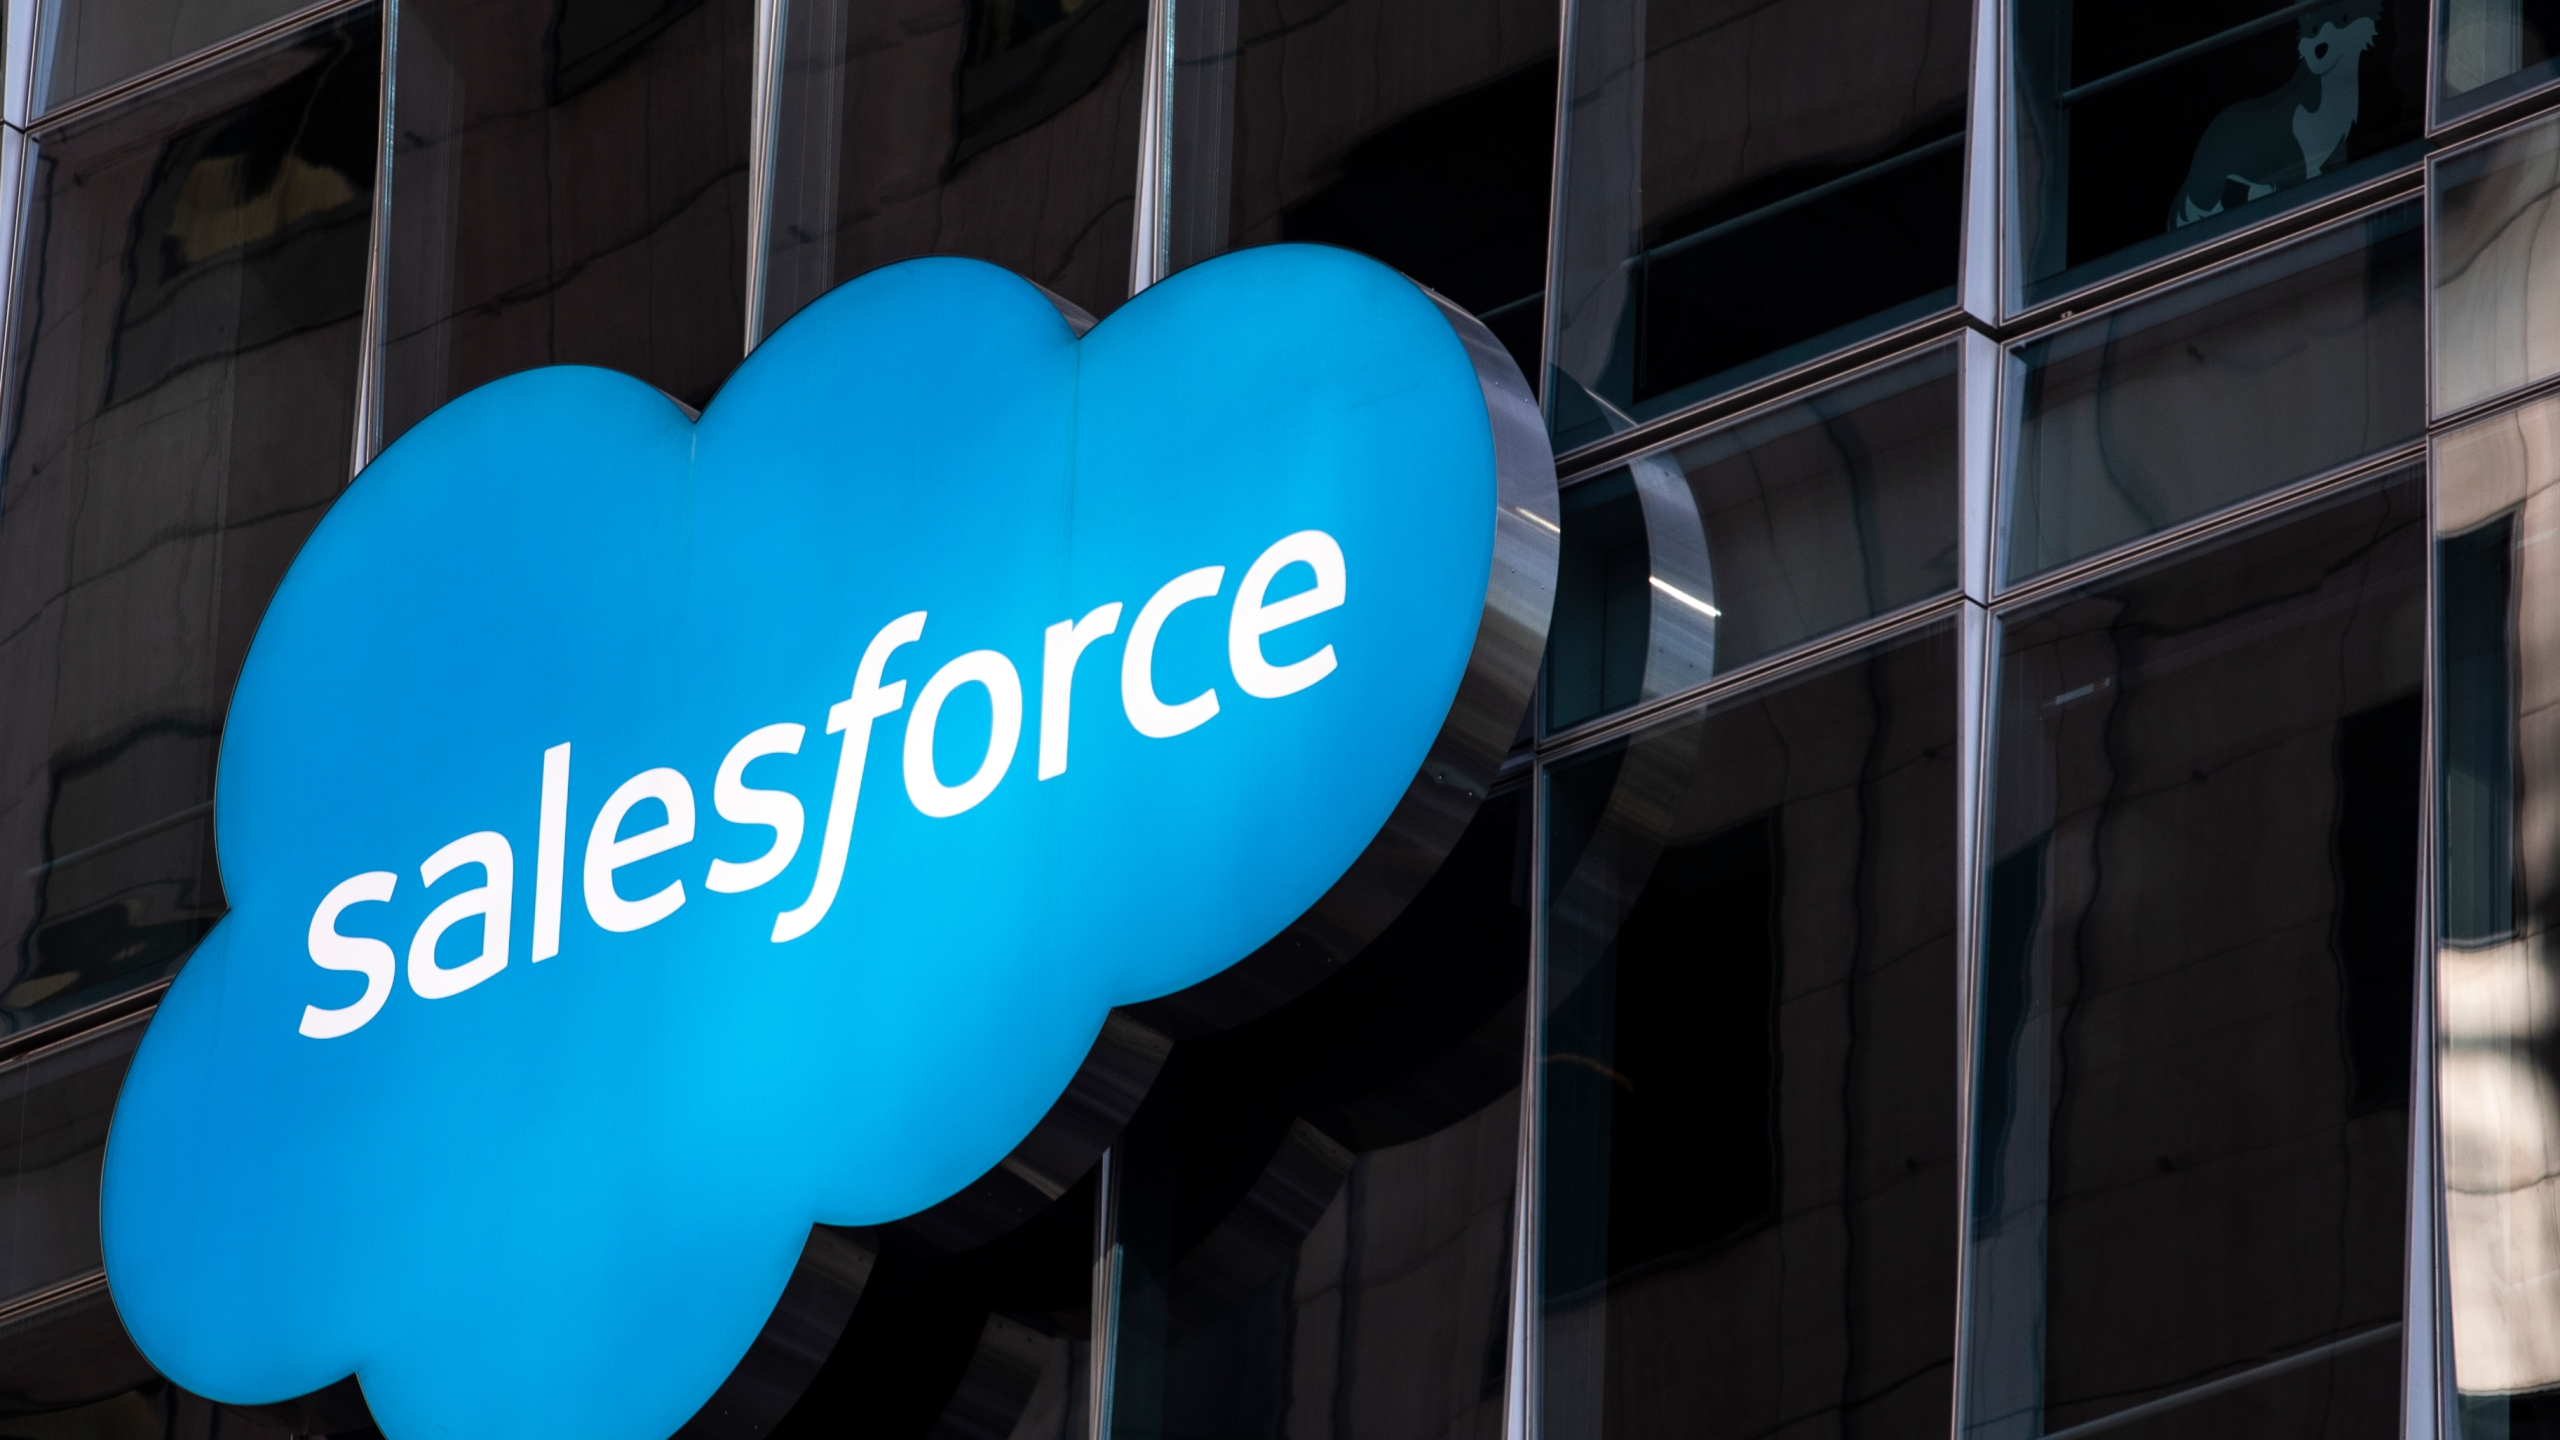 The Salesforce logo is seen at its headquarters on December 1, 2020 in San Francisco, California. (Stephen Lam/Getty Images)